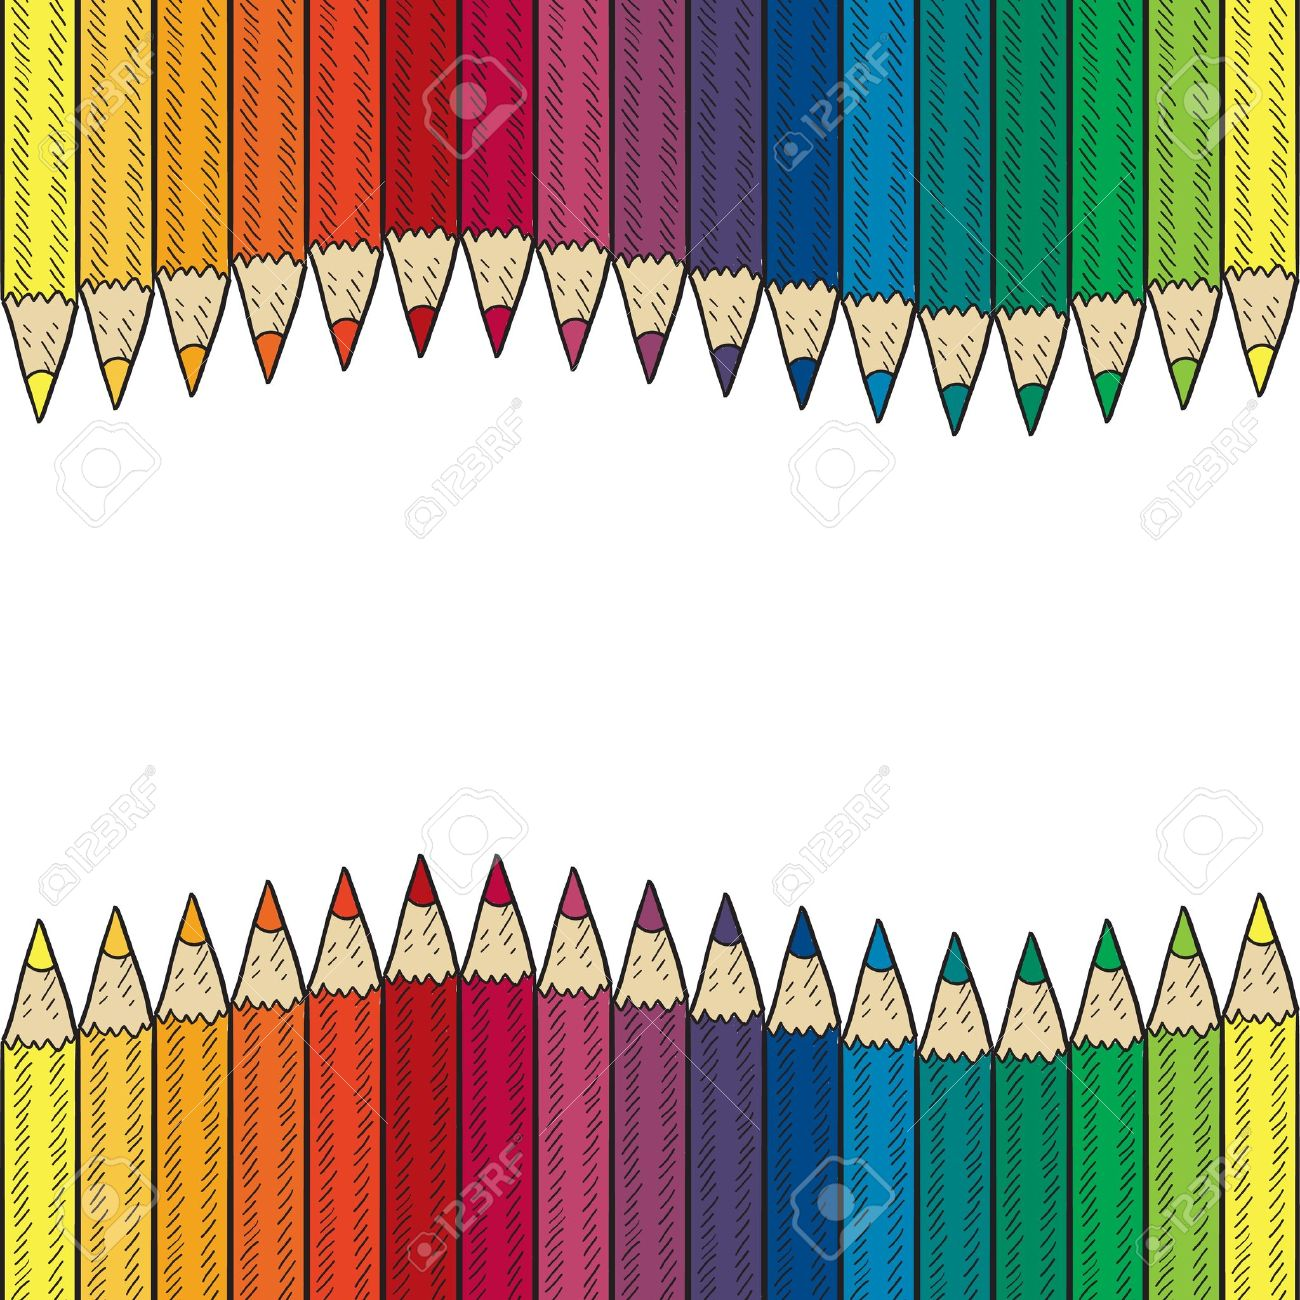 Doodle Style Seamless Colored Pencil Border Or Background Sketch